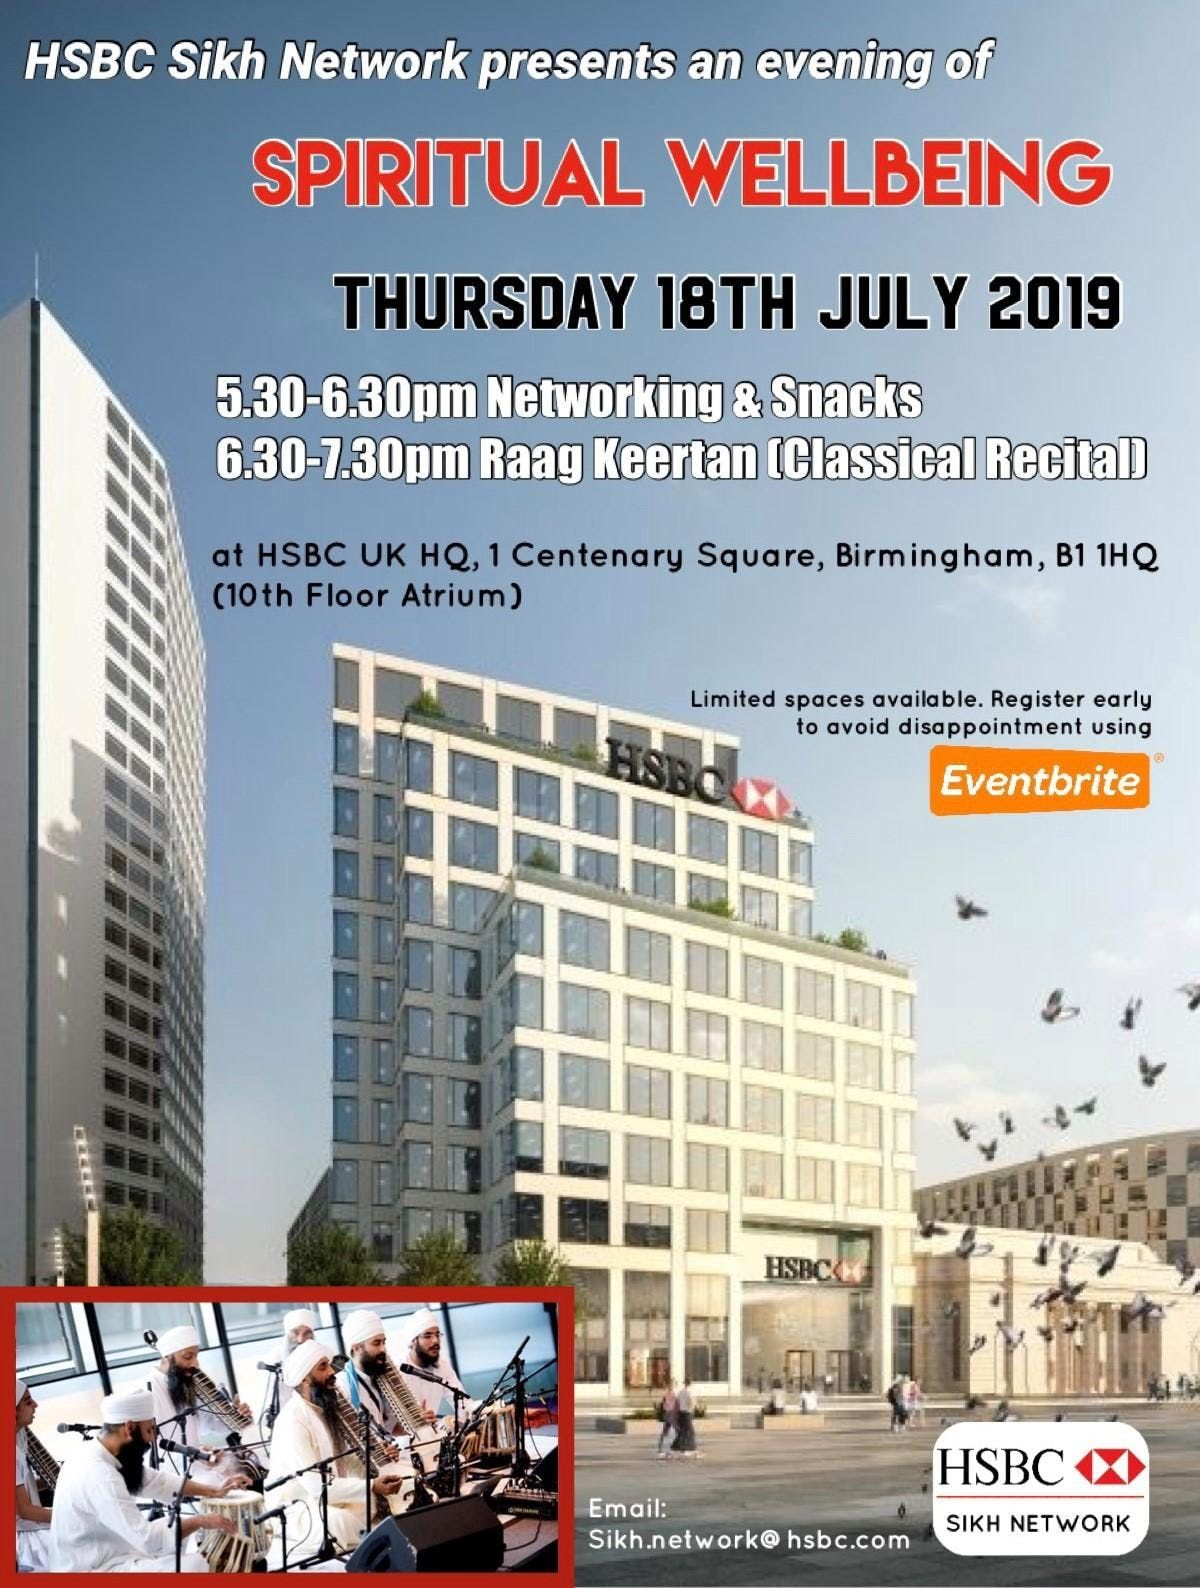 HSBC Sikh Network - Evening of Spiritual Well-being at HSBC